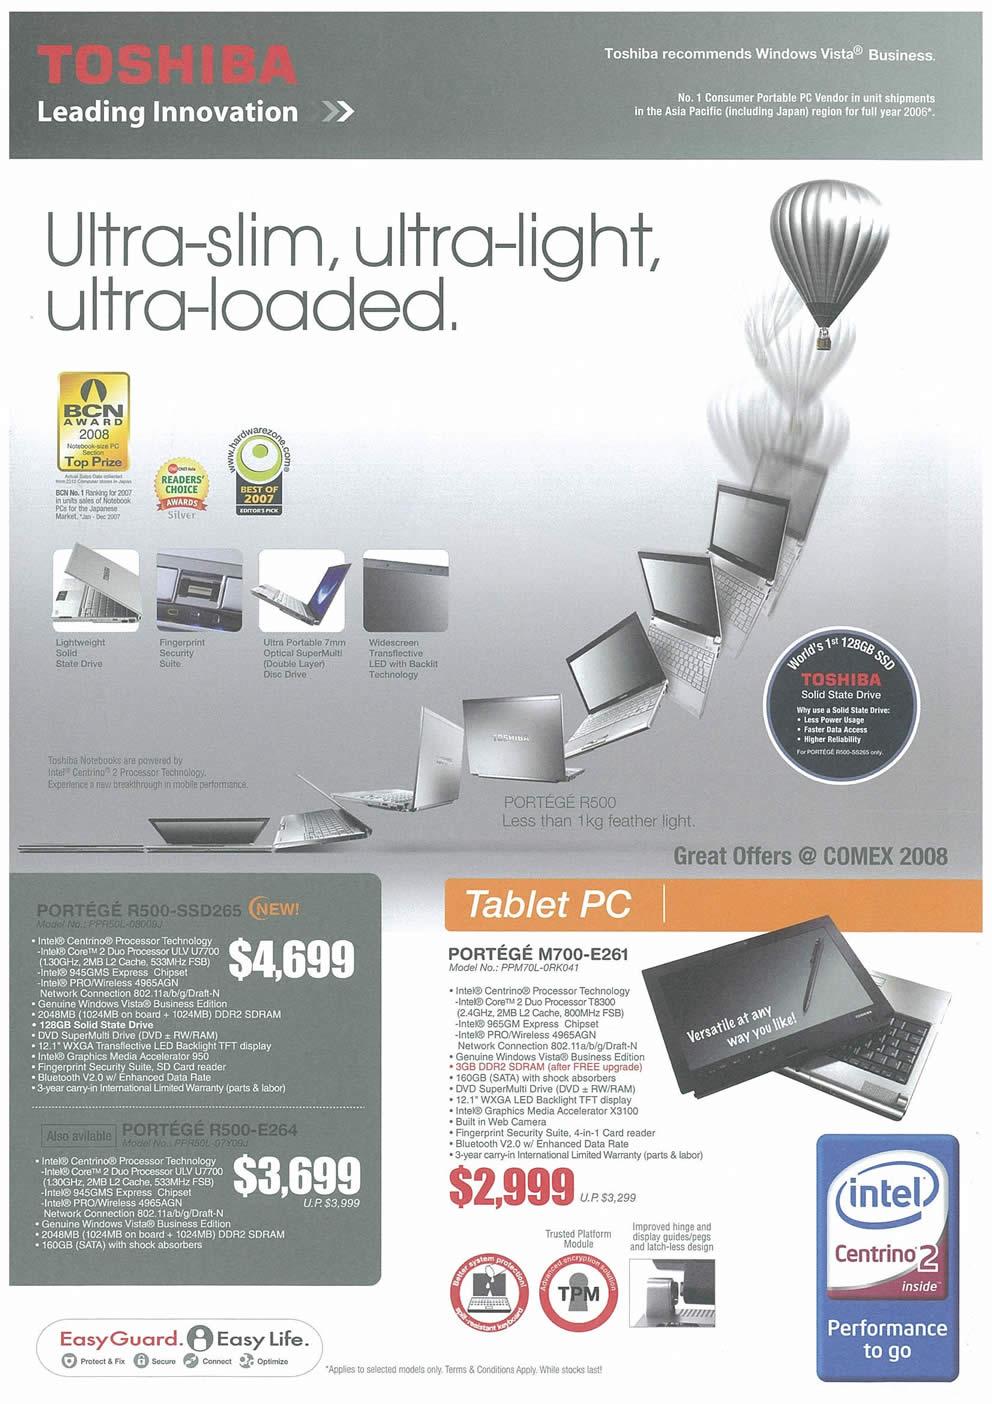 Comex 2008 price list image brochure of Toshiba Notebooks 01 Page 1